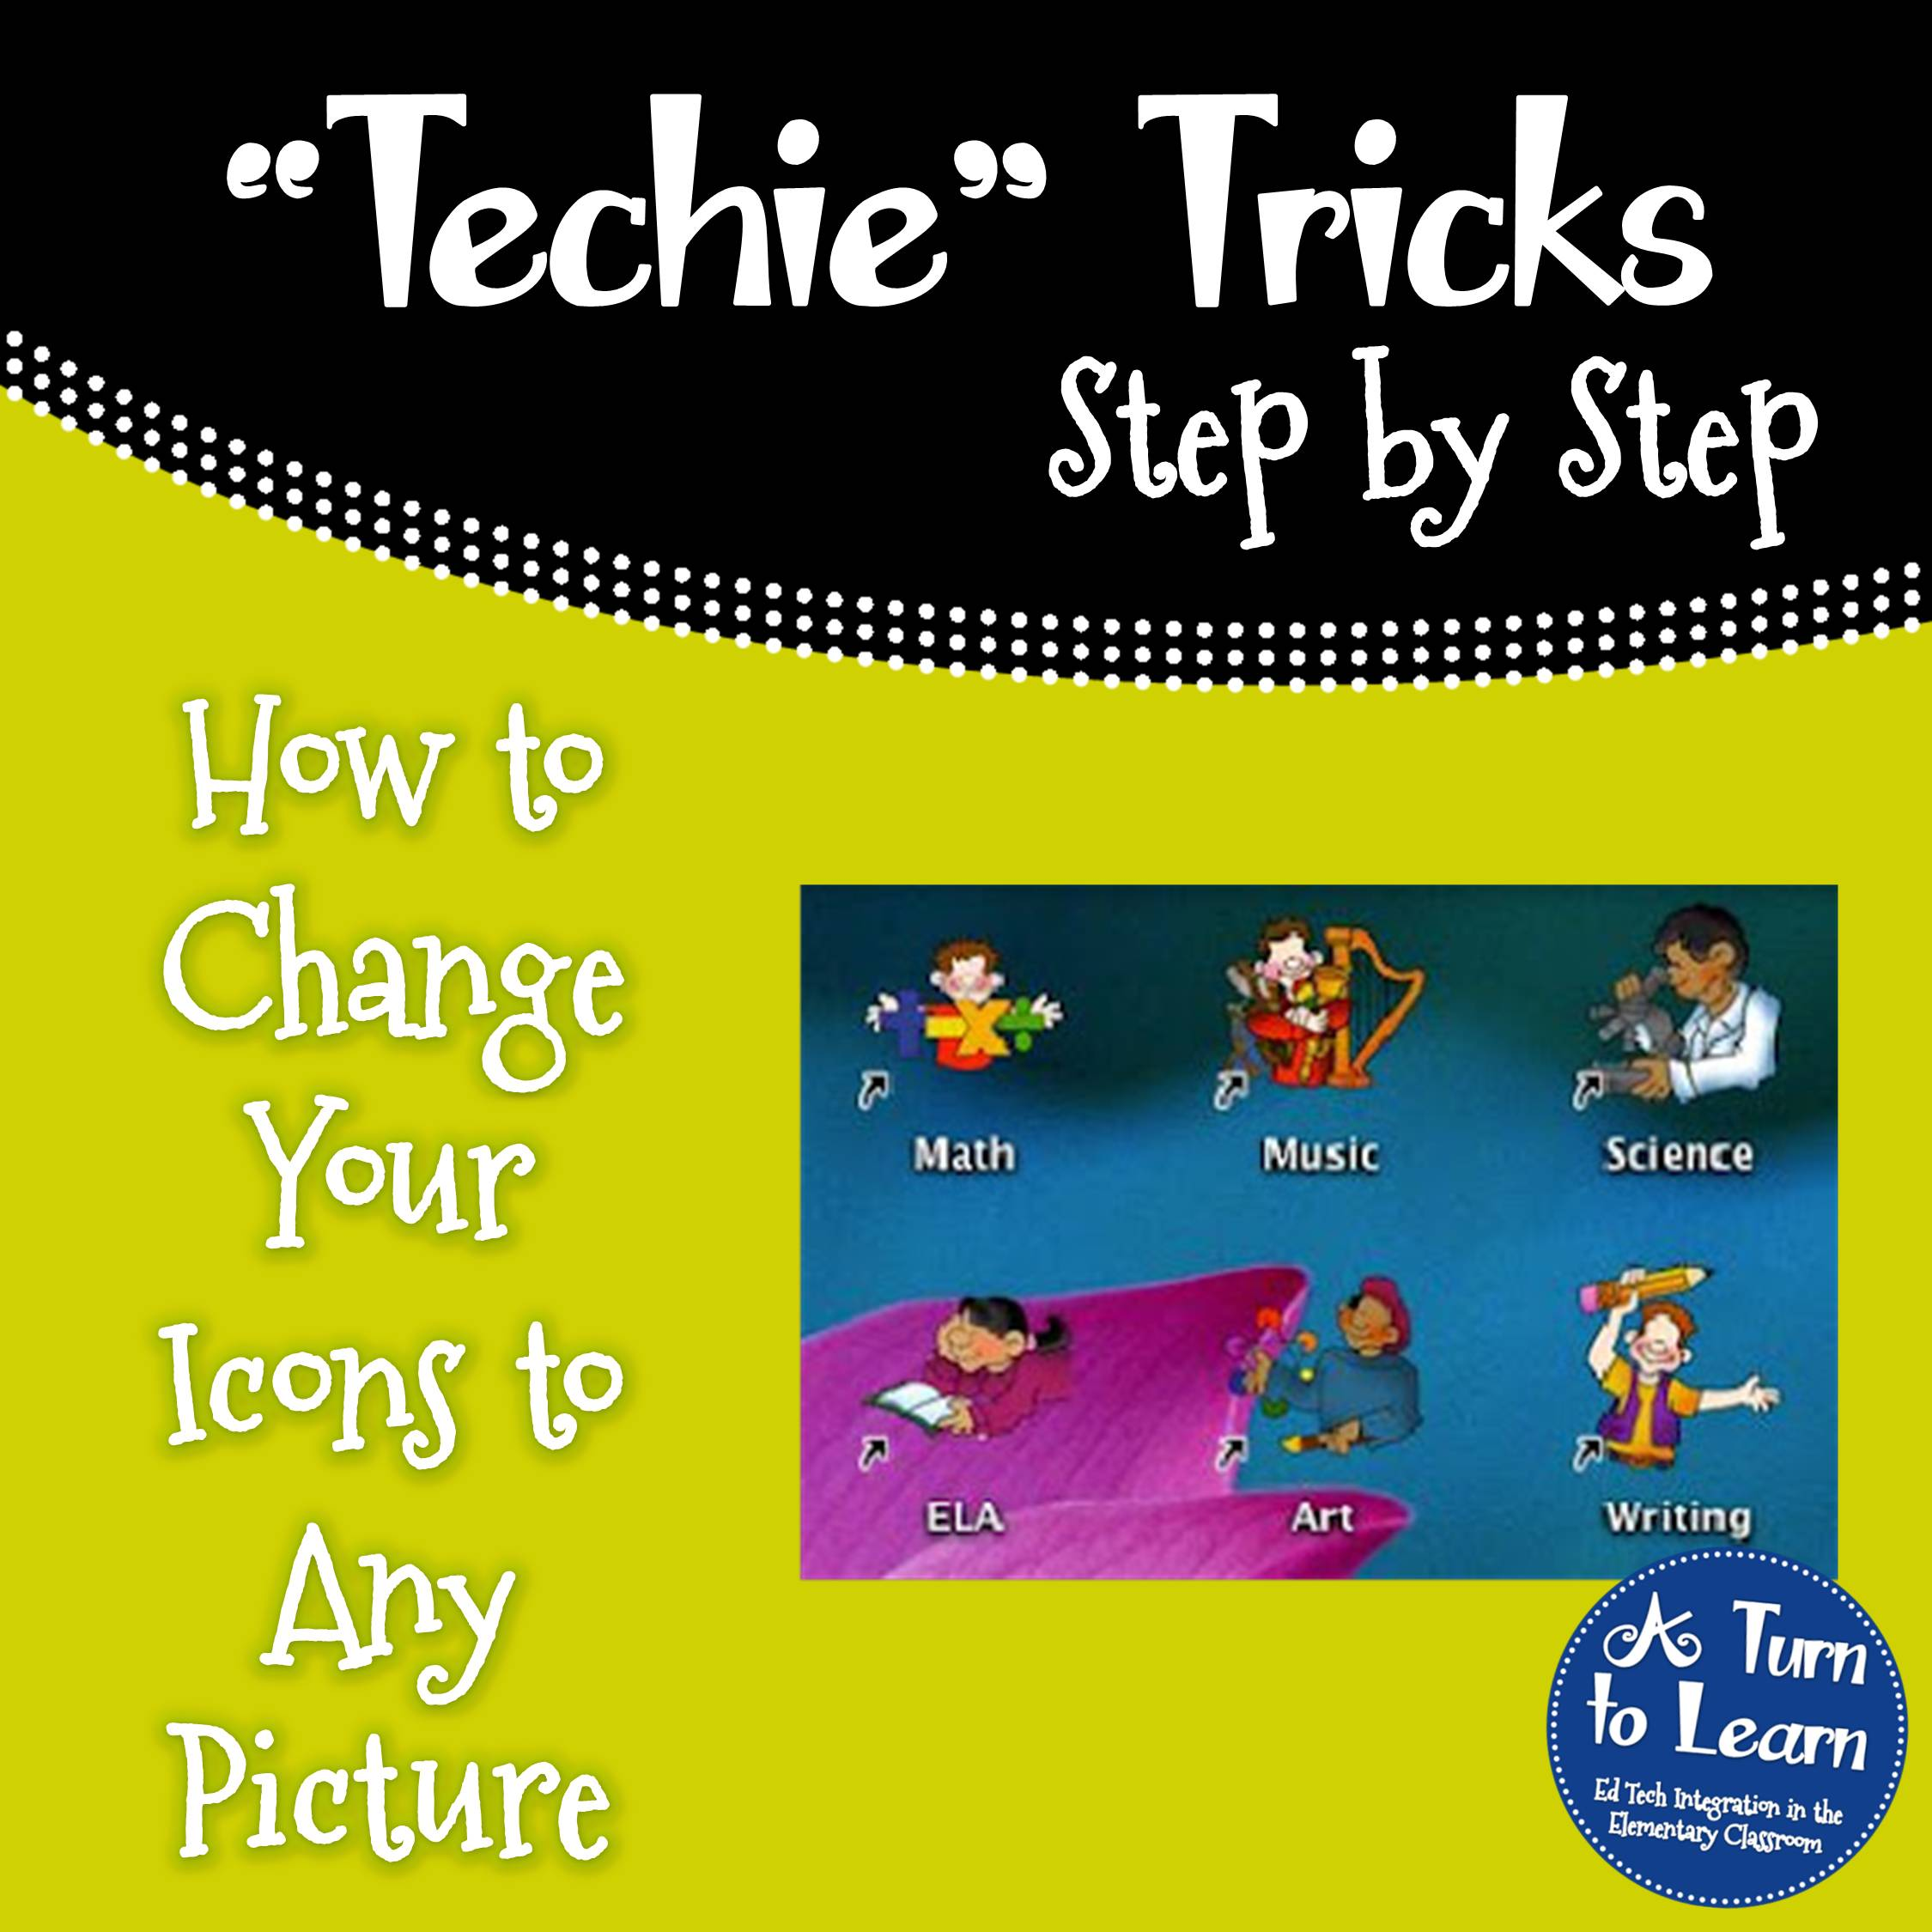 How to make any picture into an icon a turn to learn how to change your icons to any picture buycottarizona